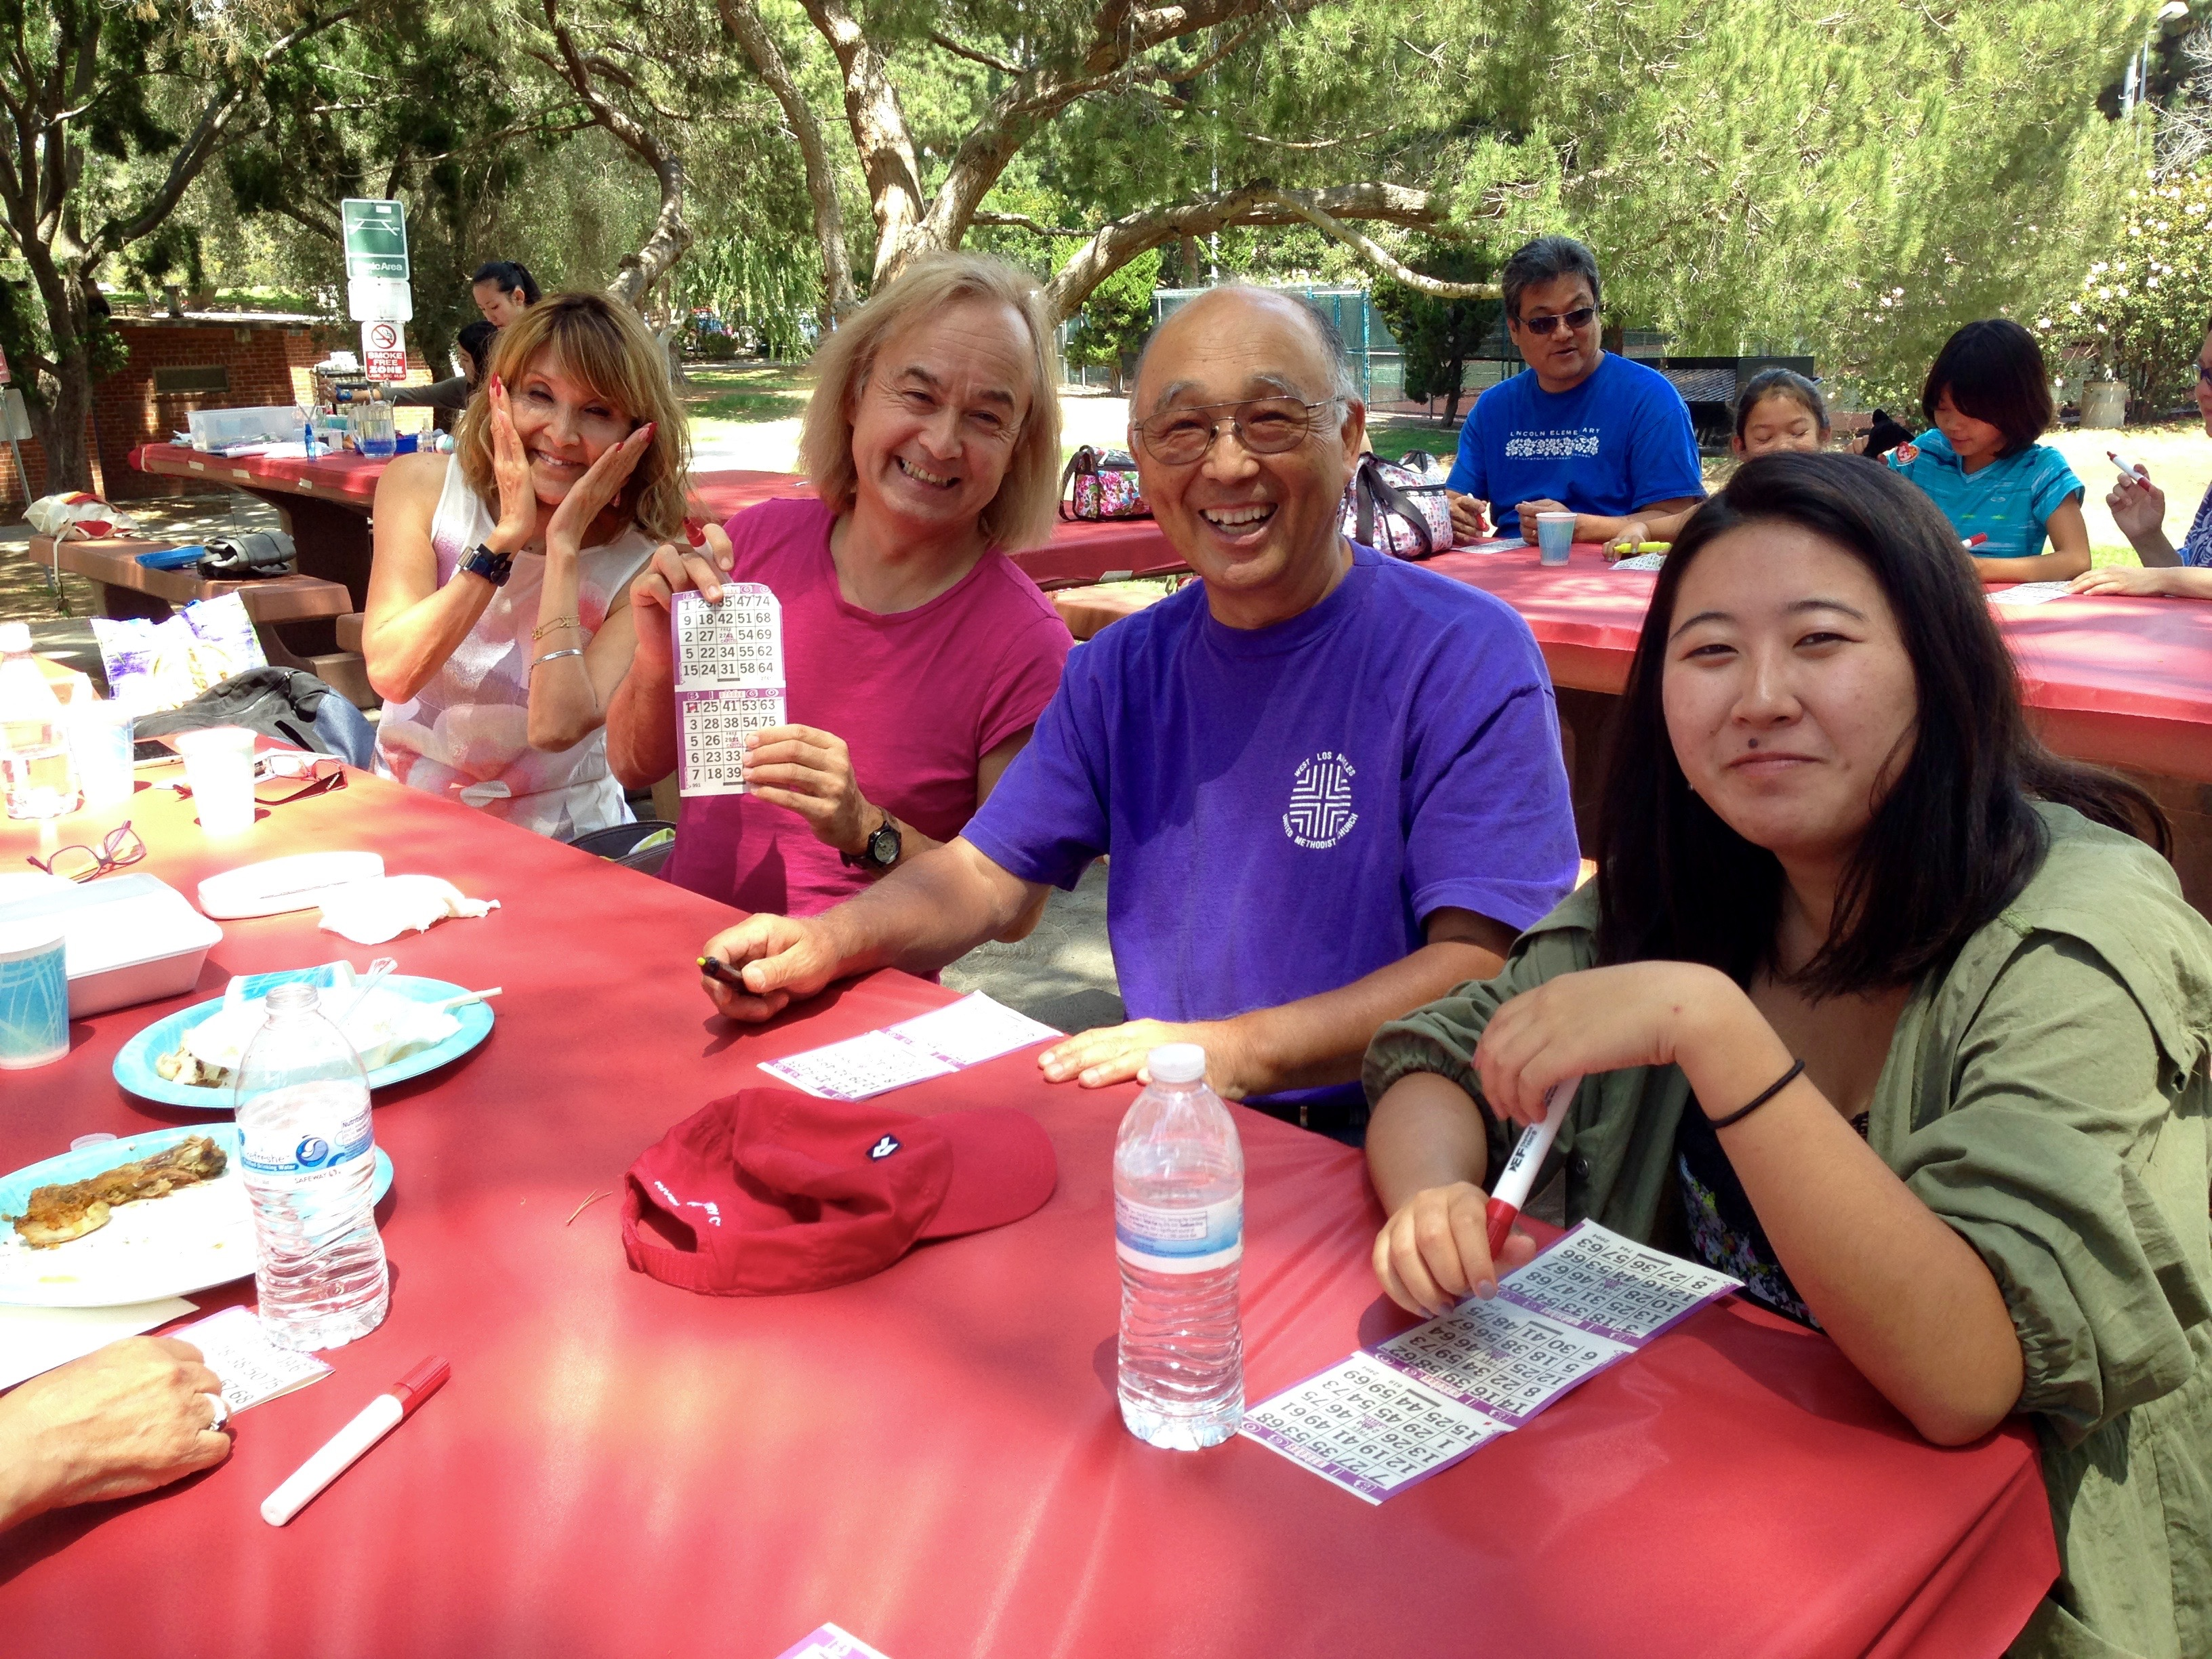 west los angeles church picnic